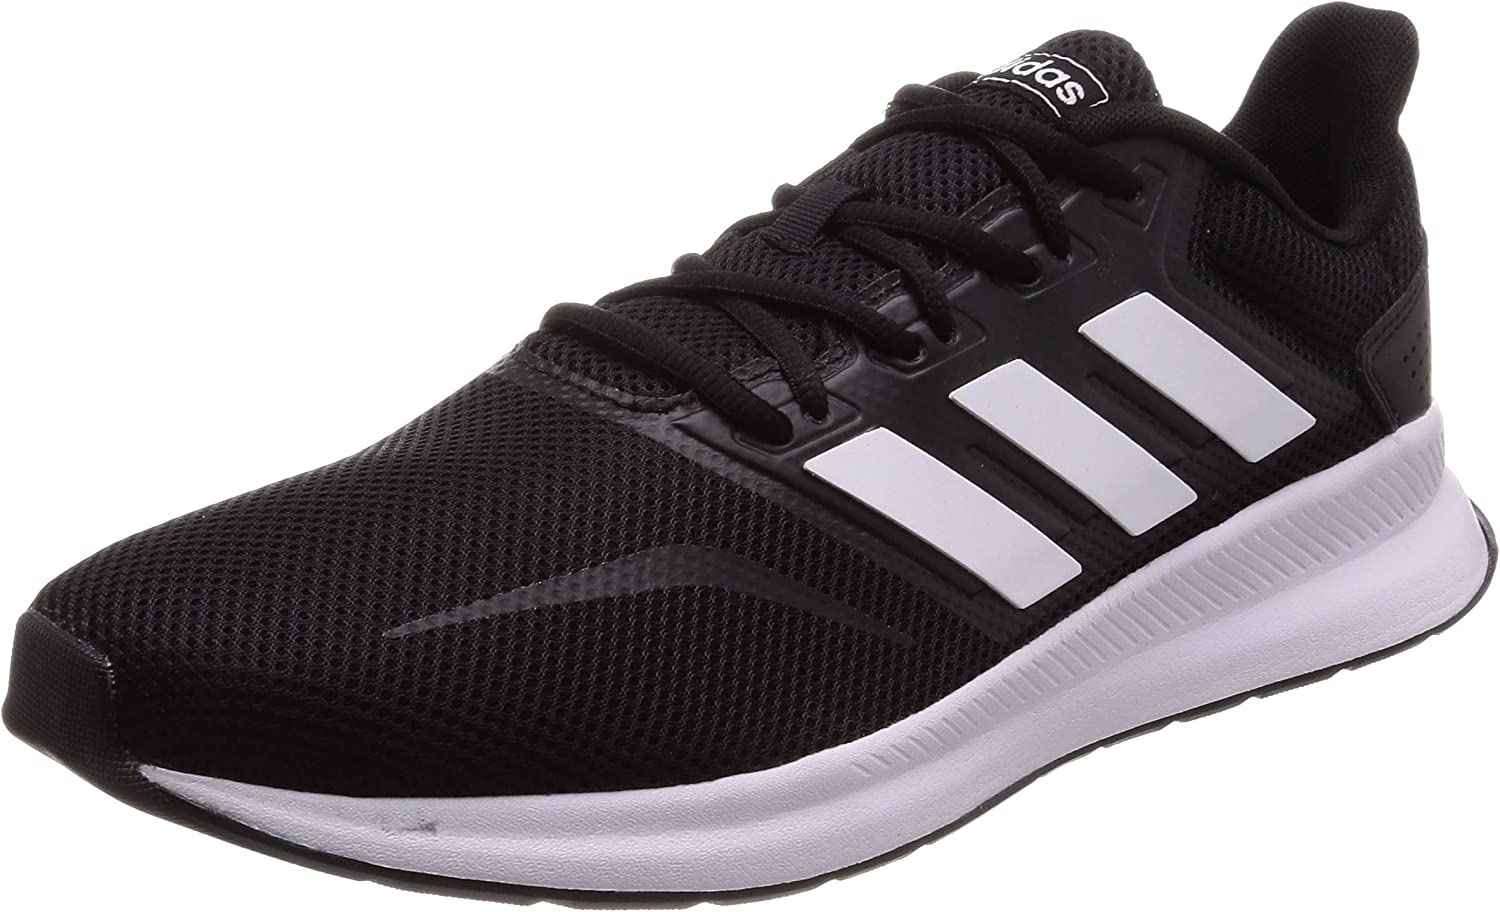 Adidas Falcon, Zapatillas de Trail Running Hombre, Negro/Blanco (Core Black/Cloud White F36199), 43 1/3 EU: Amazon.es: Zapatos y complementos